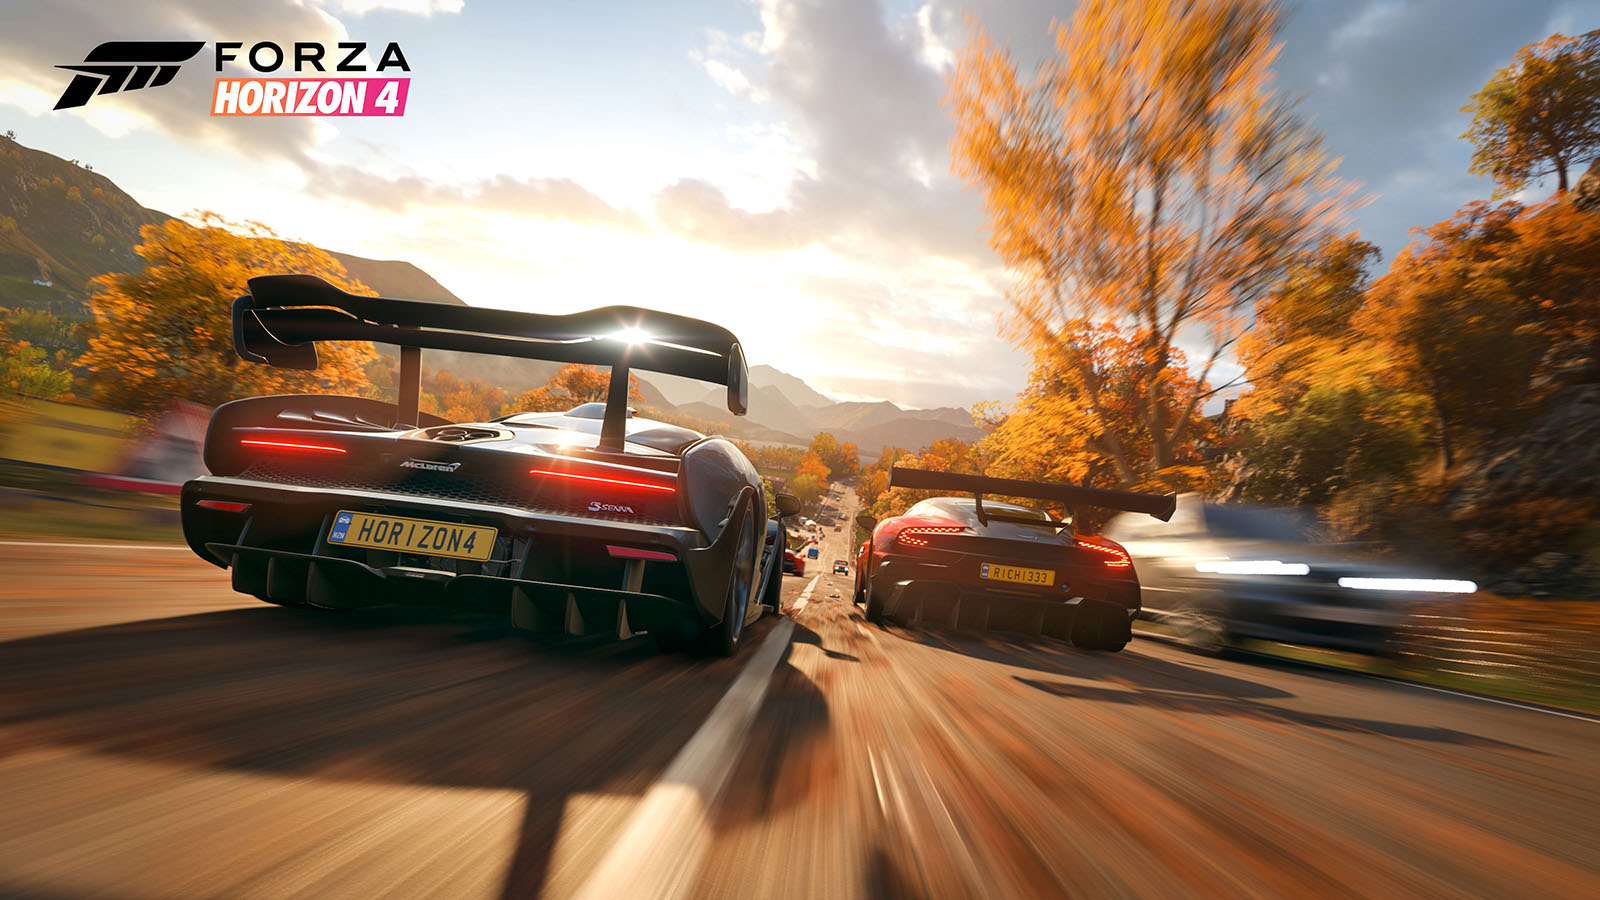 Forza Horizon 4 Series 28 Autumn Update